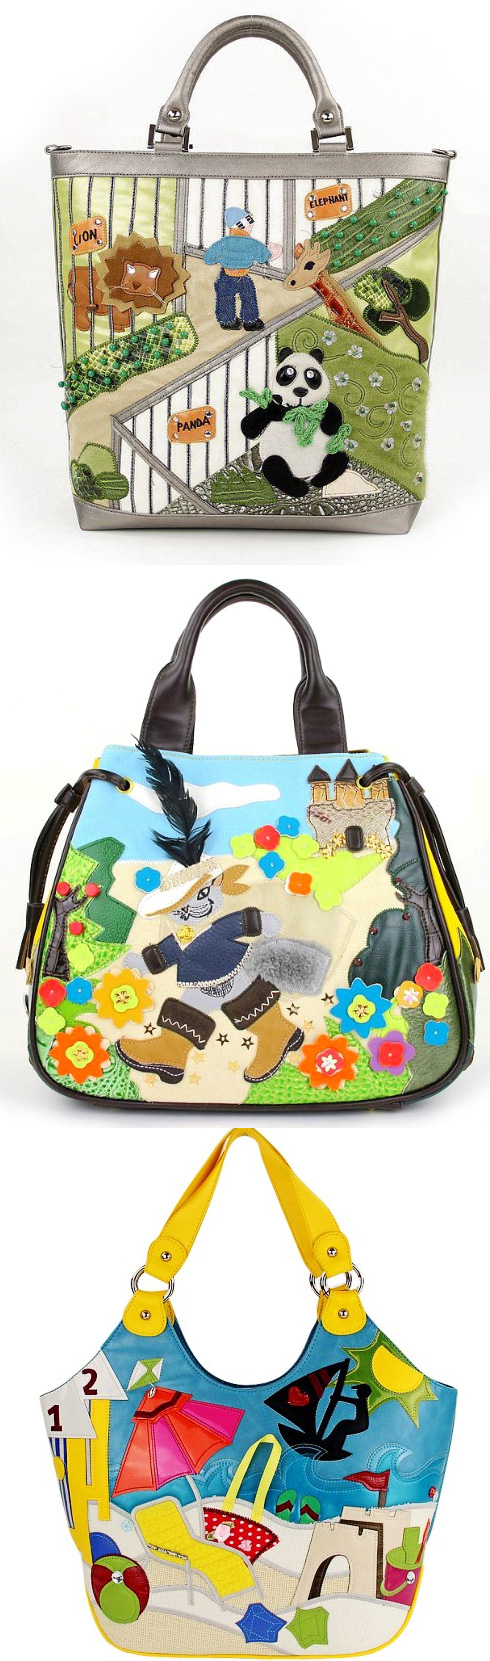 cool bags ss 2013